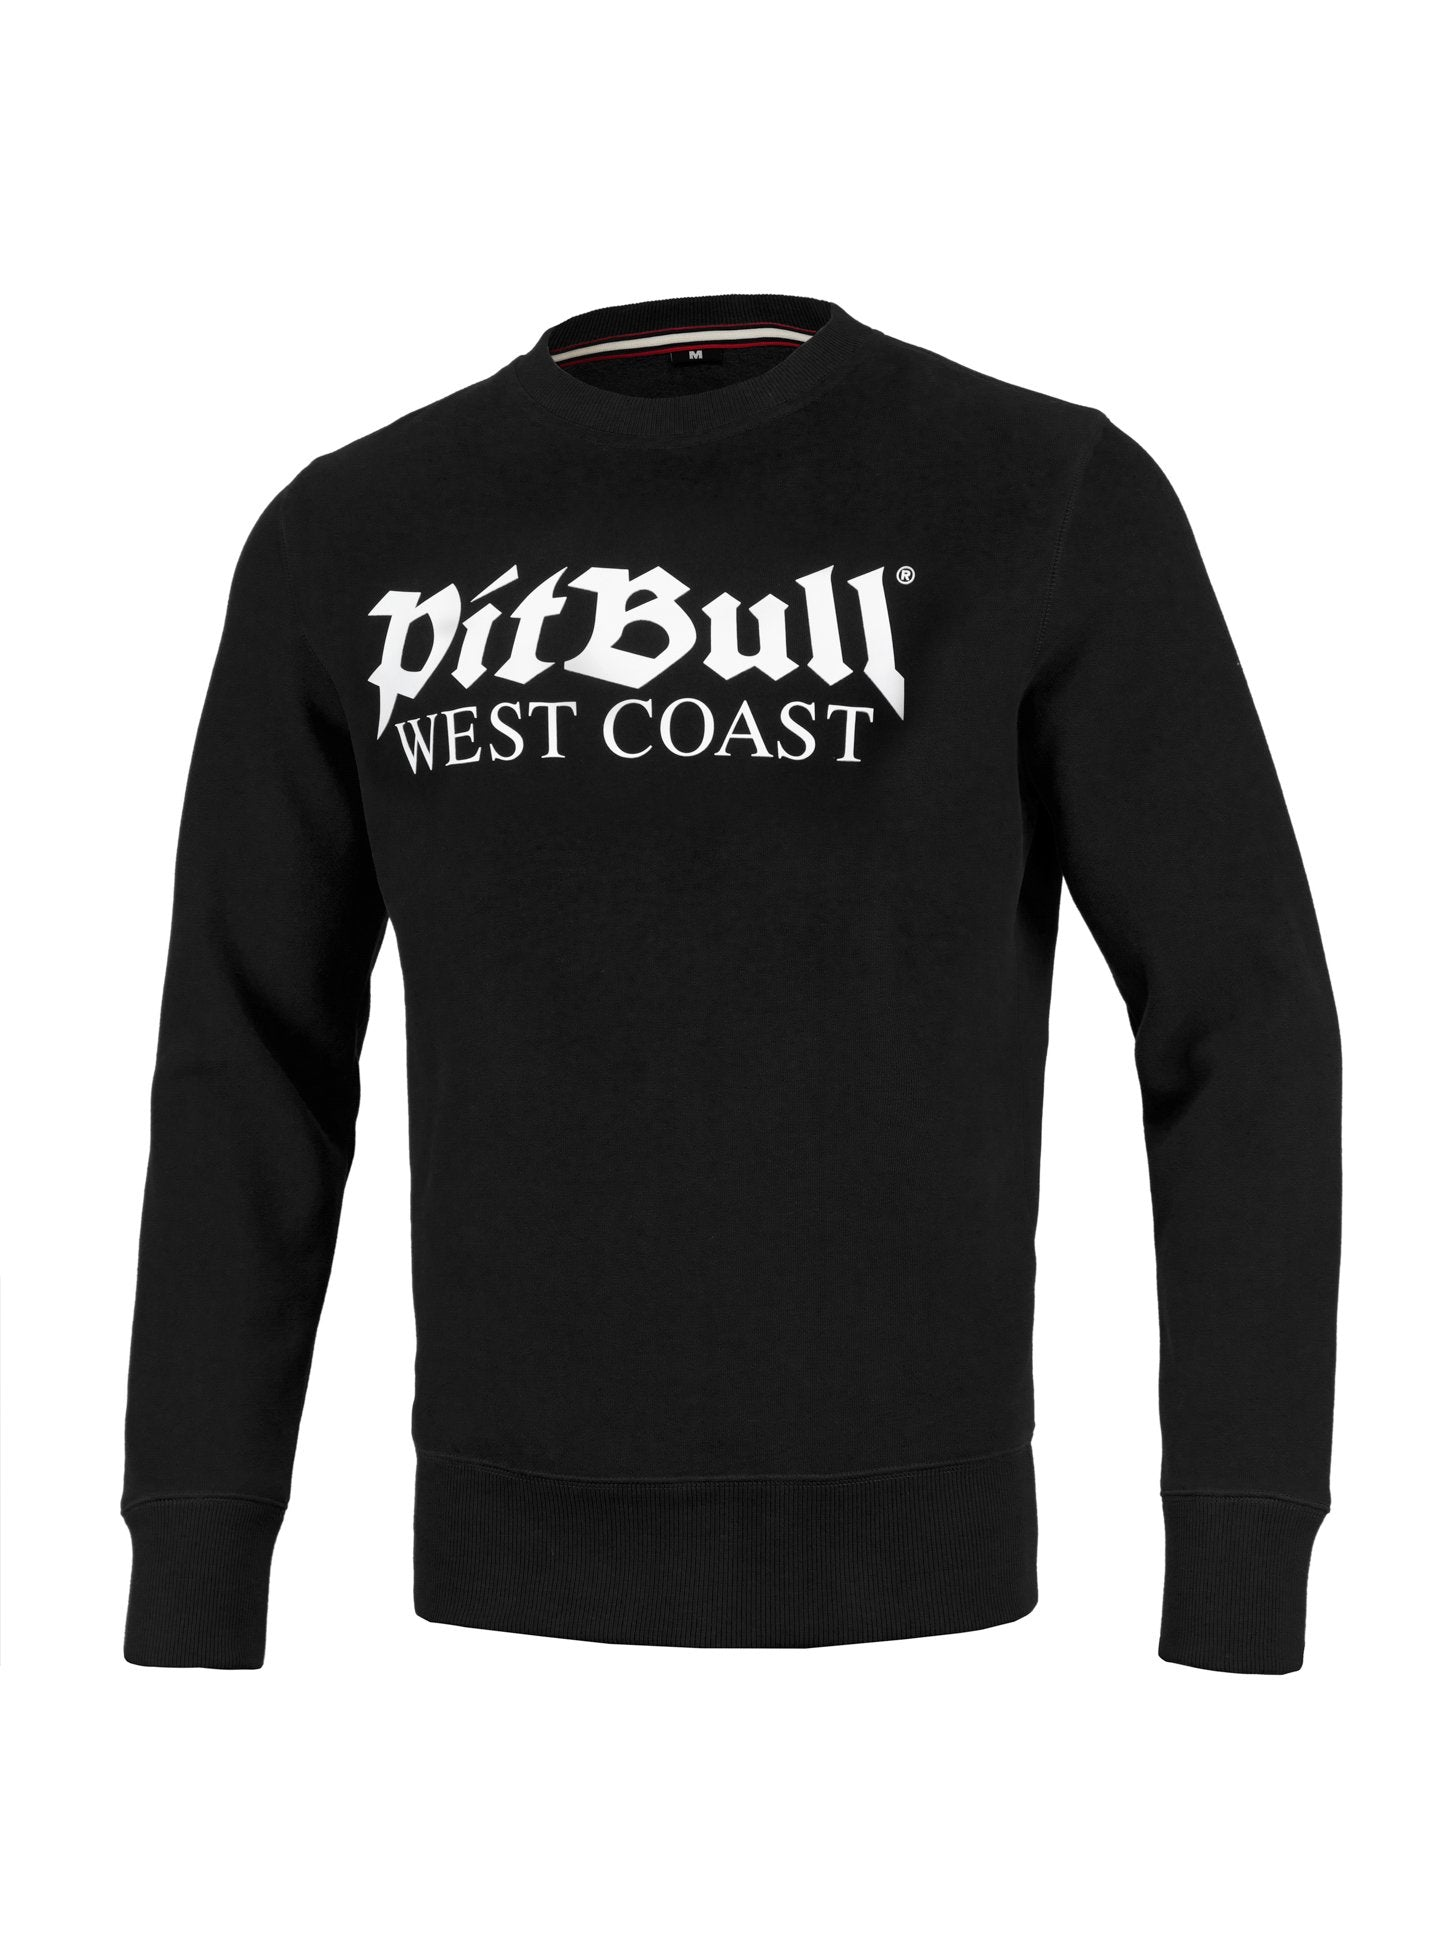 Crewneck Old Logo 19 Black - pitbullwestcoast